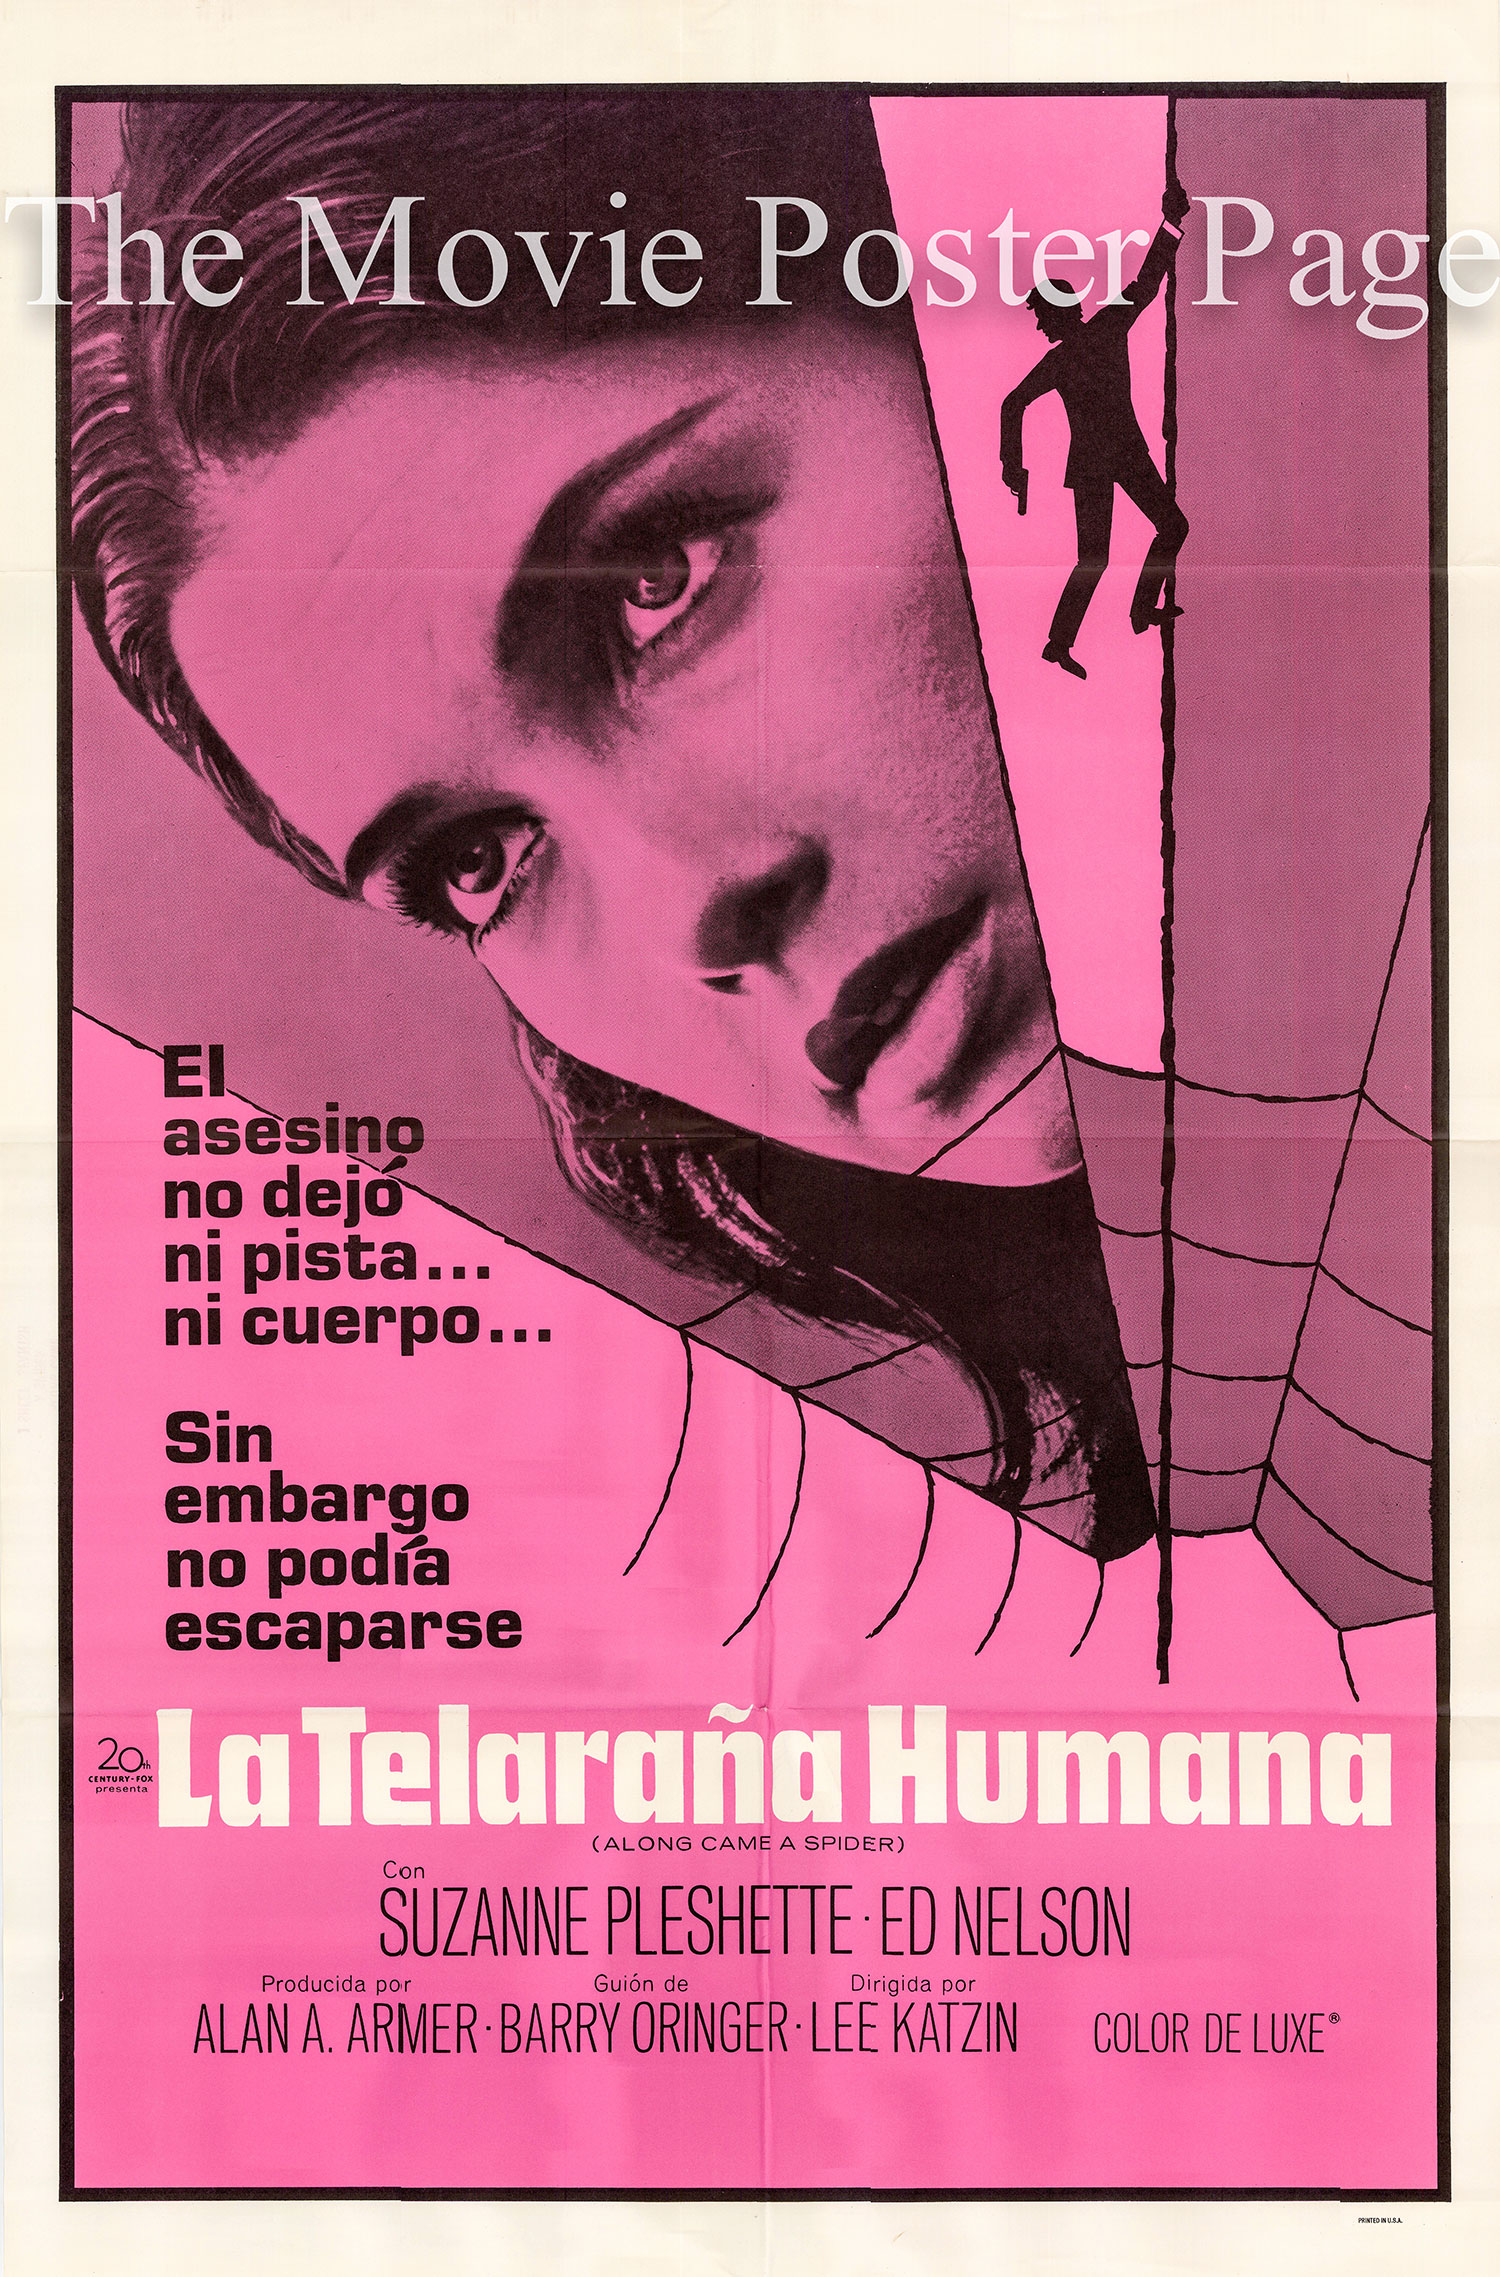 Pictured is a Spanish poster for the 1970 Lee H. Katlin film Along Came a Spider starring Suzanne Pleshette.